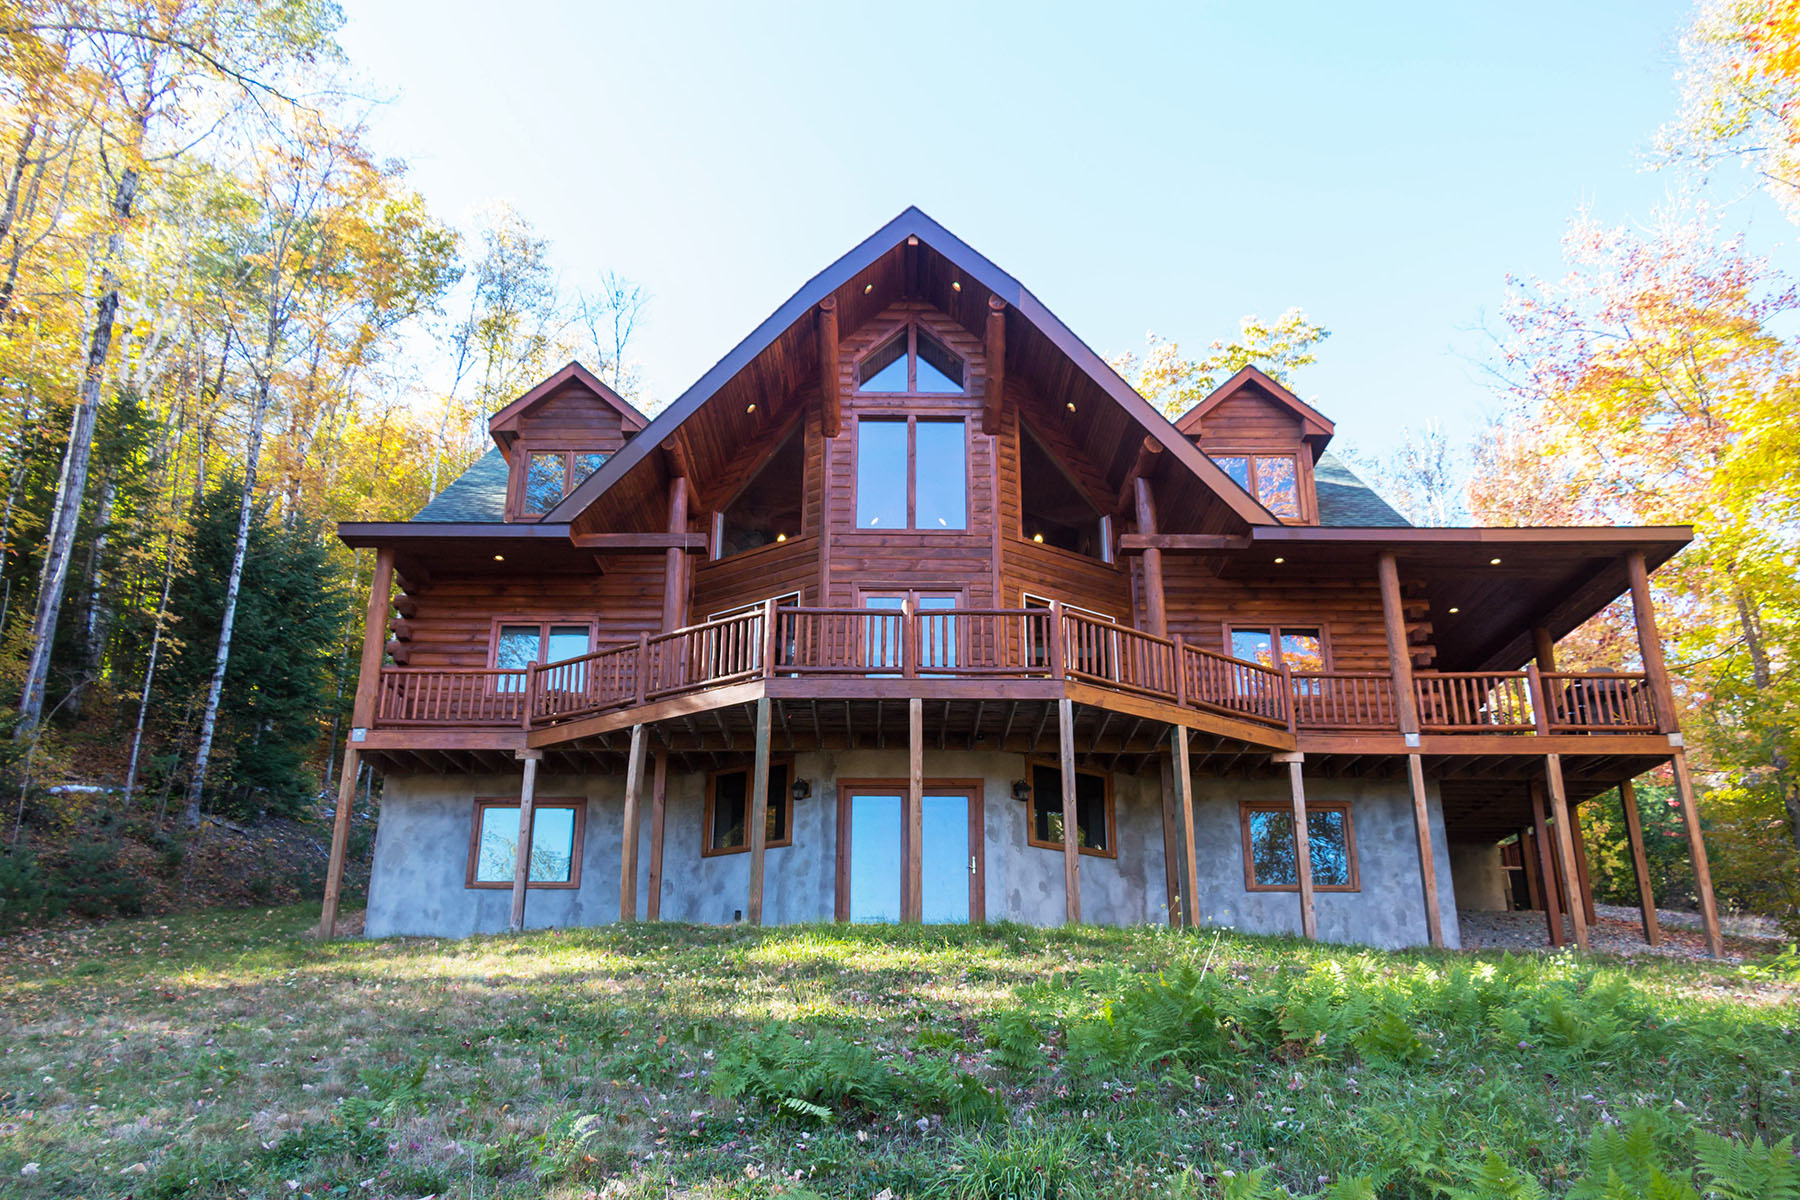 Single Family Home for Sale at Gore Mountain Log Home 35 Evergreen Way Johnsburg, 12853 United States